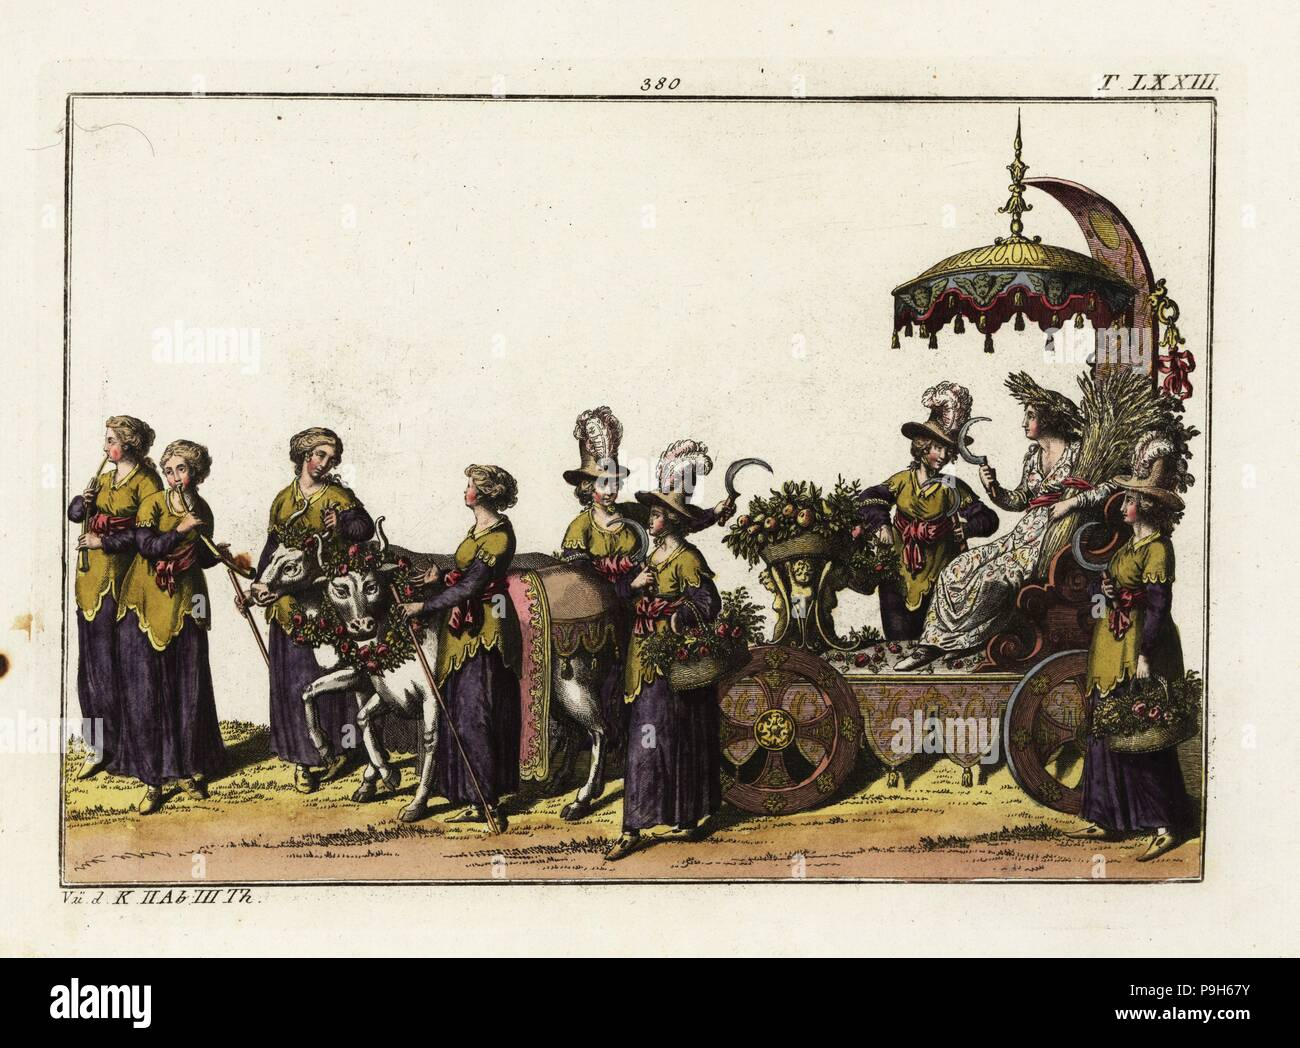 A triumphal carriage decorated with fruit and flowers from the harvest accompanied by female reapers (Schnitterinnen) holding scythes. A woman with a bushel of wheat sits on a throne. Part of the celebration of the birth of Freiderich, Duke of Wurttemberg. Taken from Delineation und Abbildung aller furstlichen Aufzug und Ritterspielen by Esaias von Hulsen, 1617. Handcoloured copperplate engraving from Robert von Spalart's Historical Picture of the Costumes of the Principal People of Antiquity and of the Middle Ages, Chez Collignon, Metz, 1810. - Stock Image